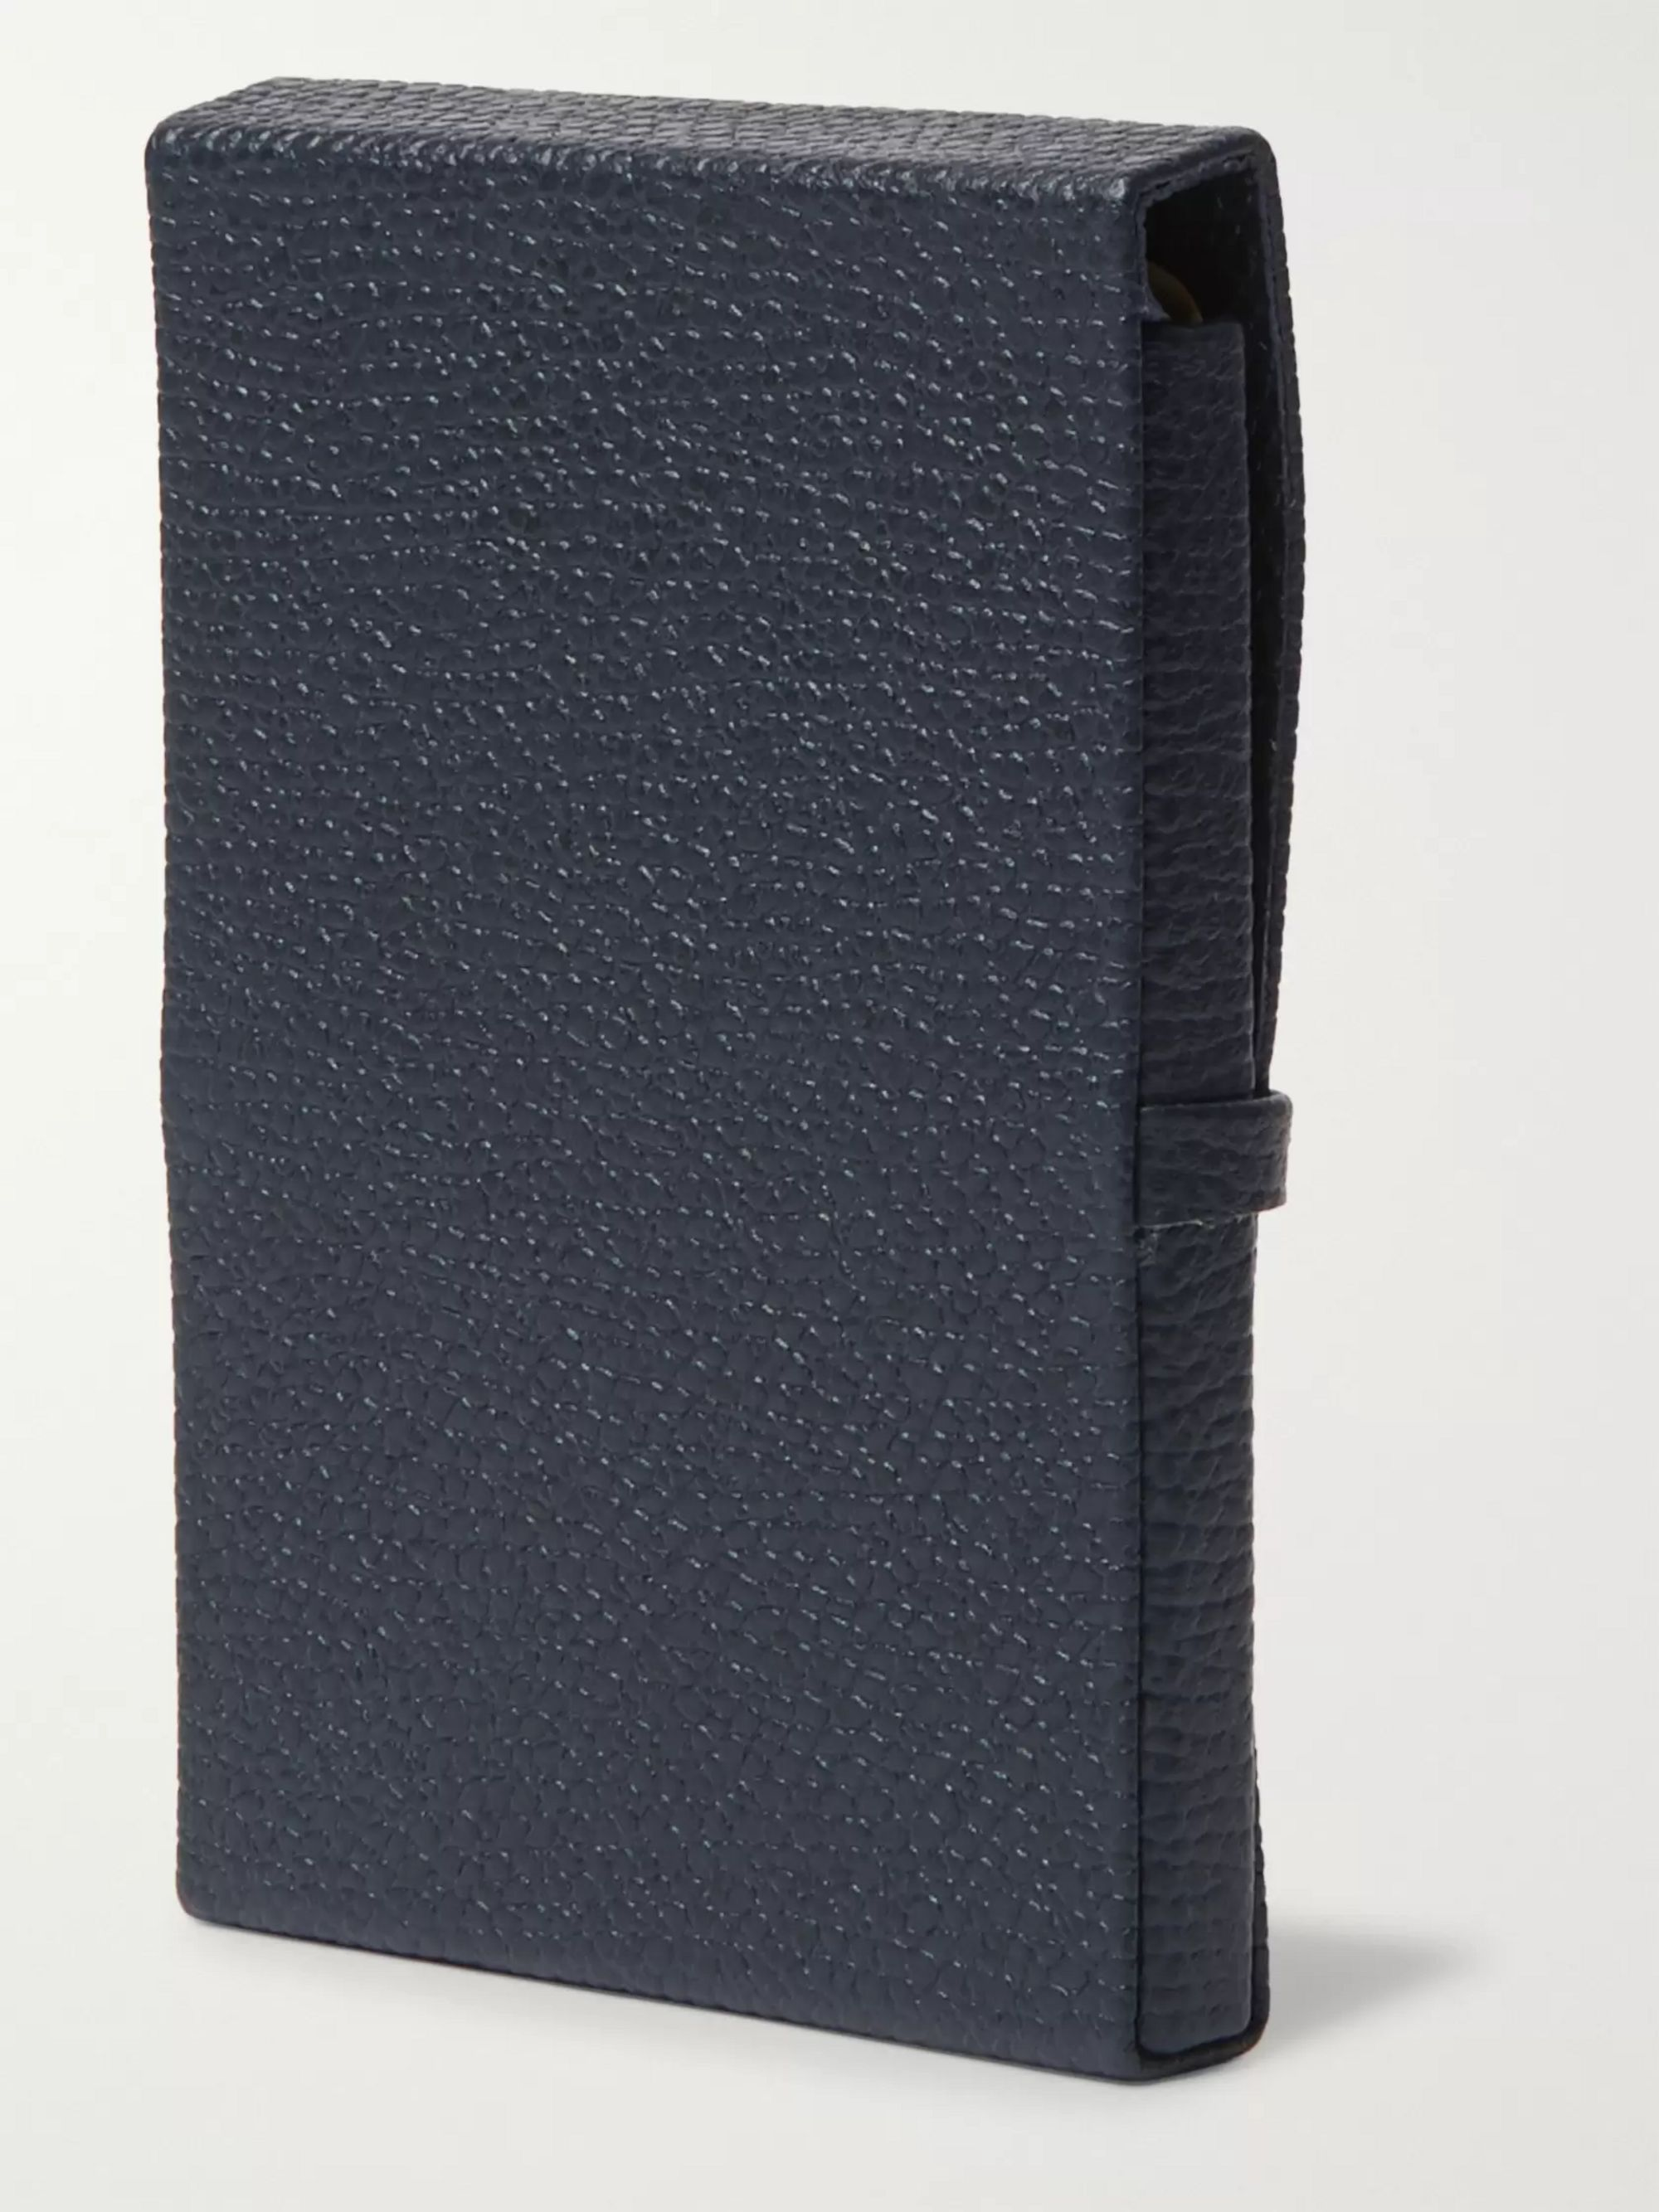 Valextra Full-Grain Leather Cardholder